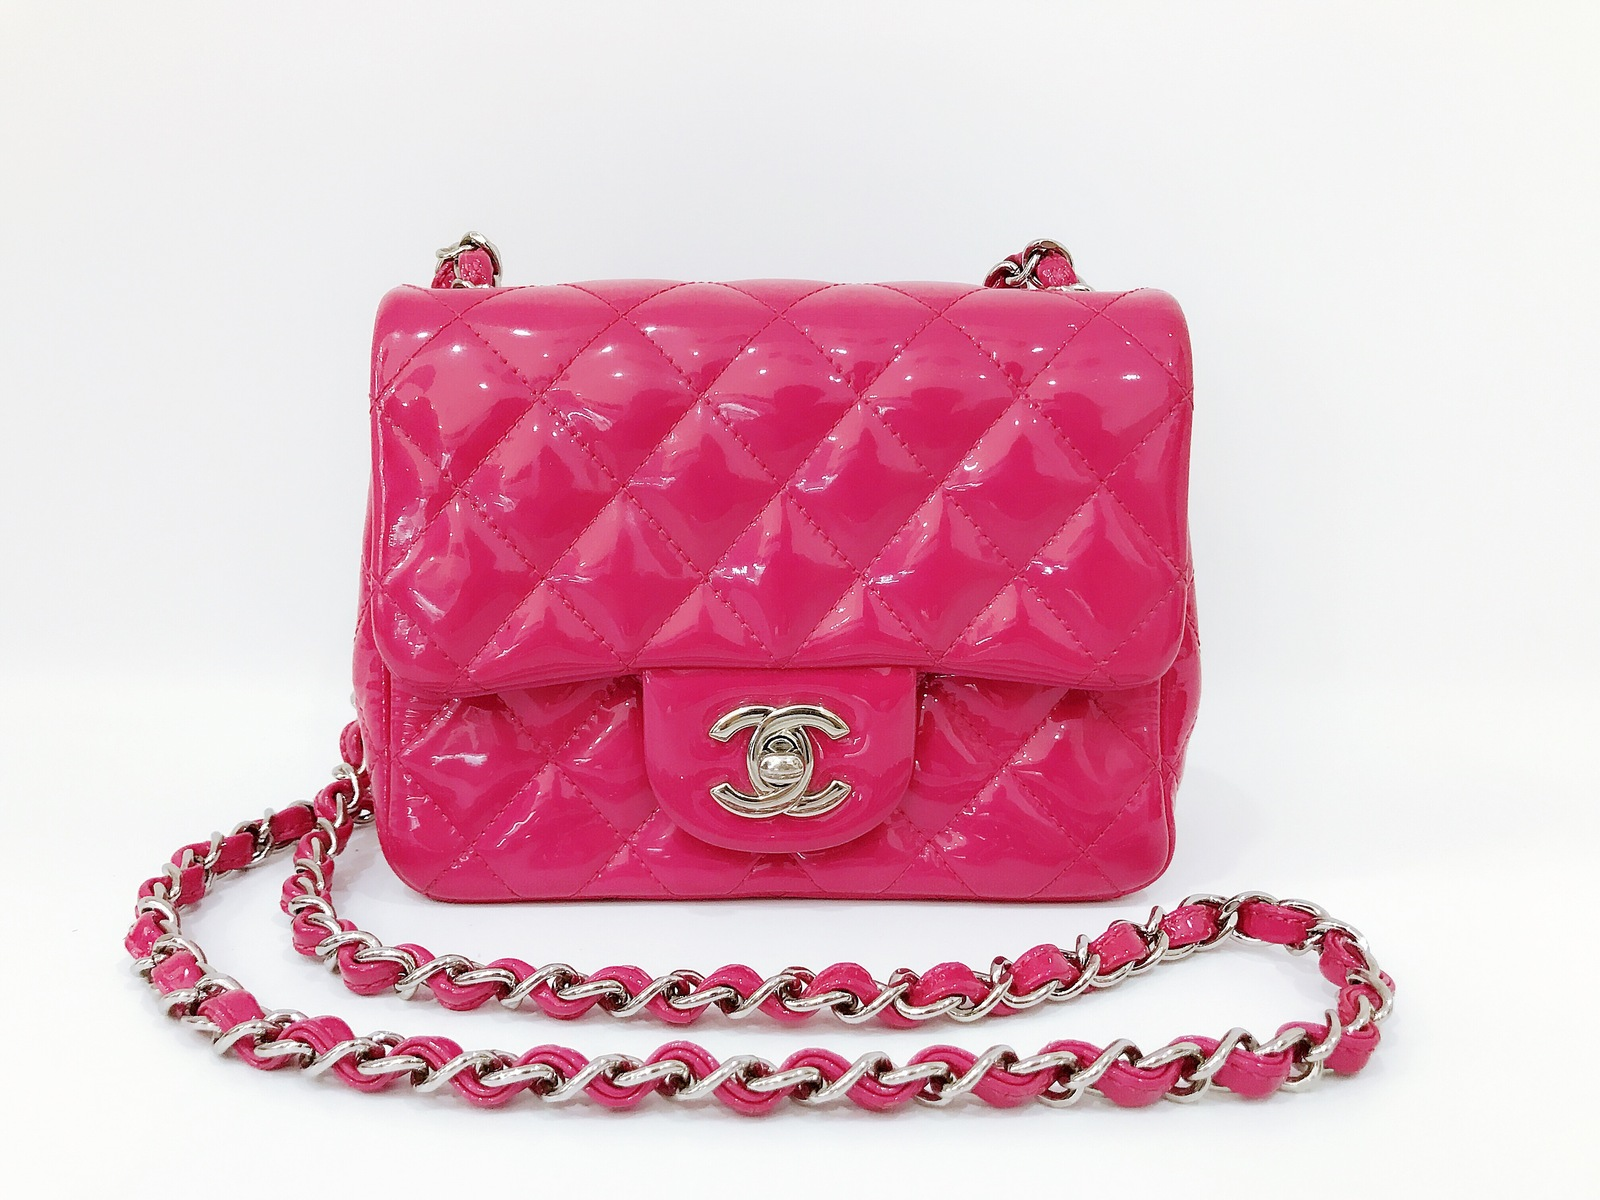 c3c7d92e9cd05d AUTHENTIC CHANEL PINK QUILTED PATENT LEATHER SQUARE MINI CLASSIC ...